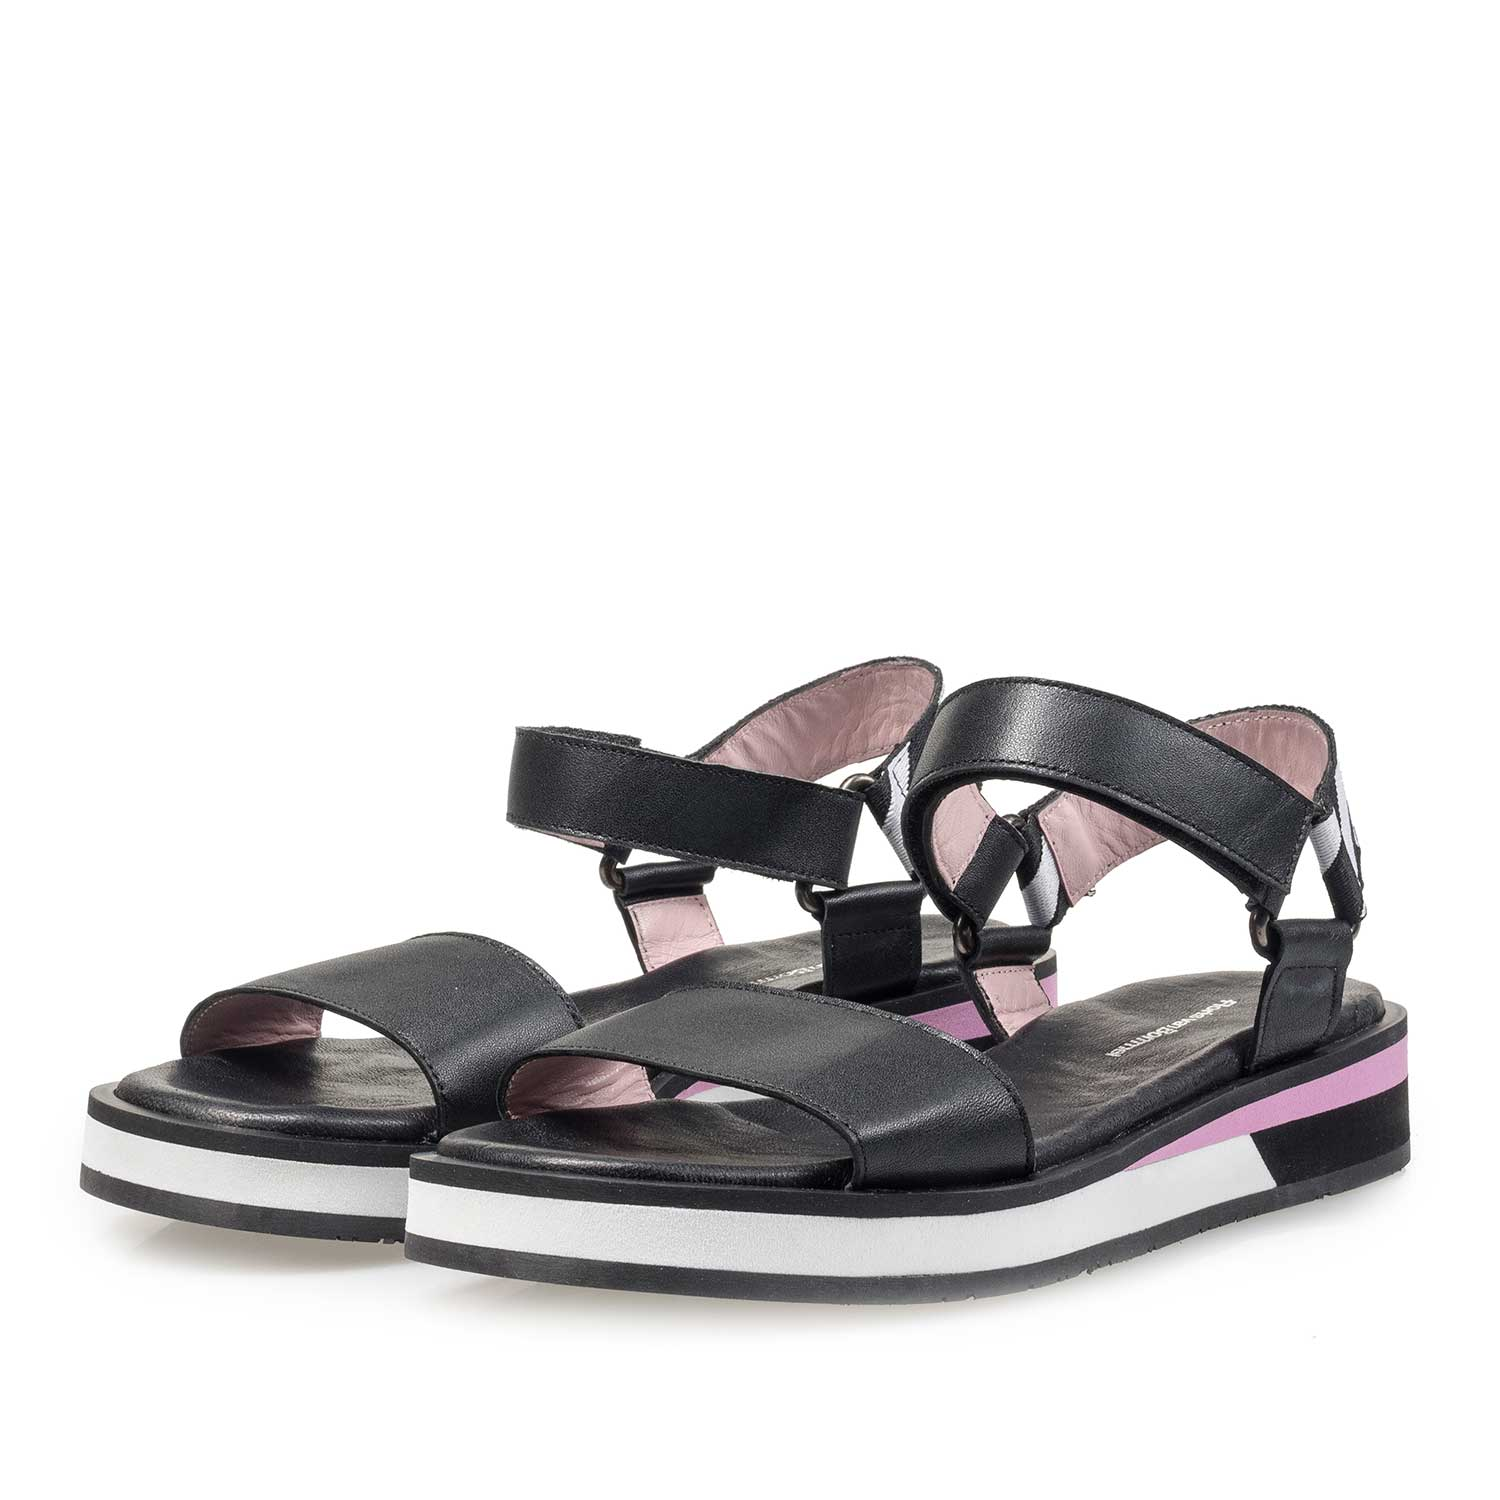 85922/00 - Flat black leather sandal